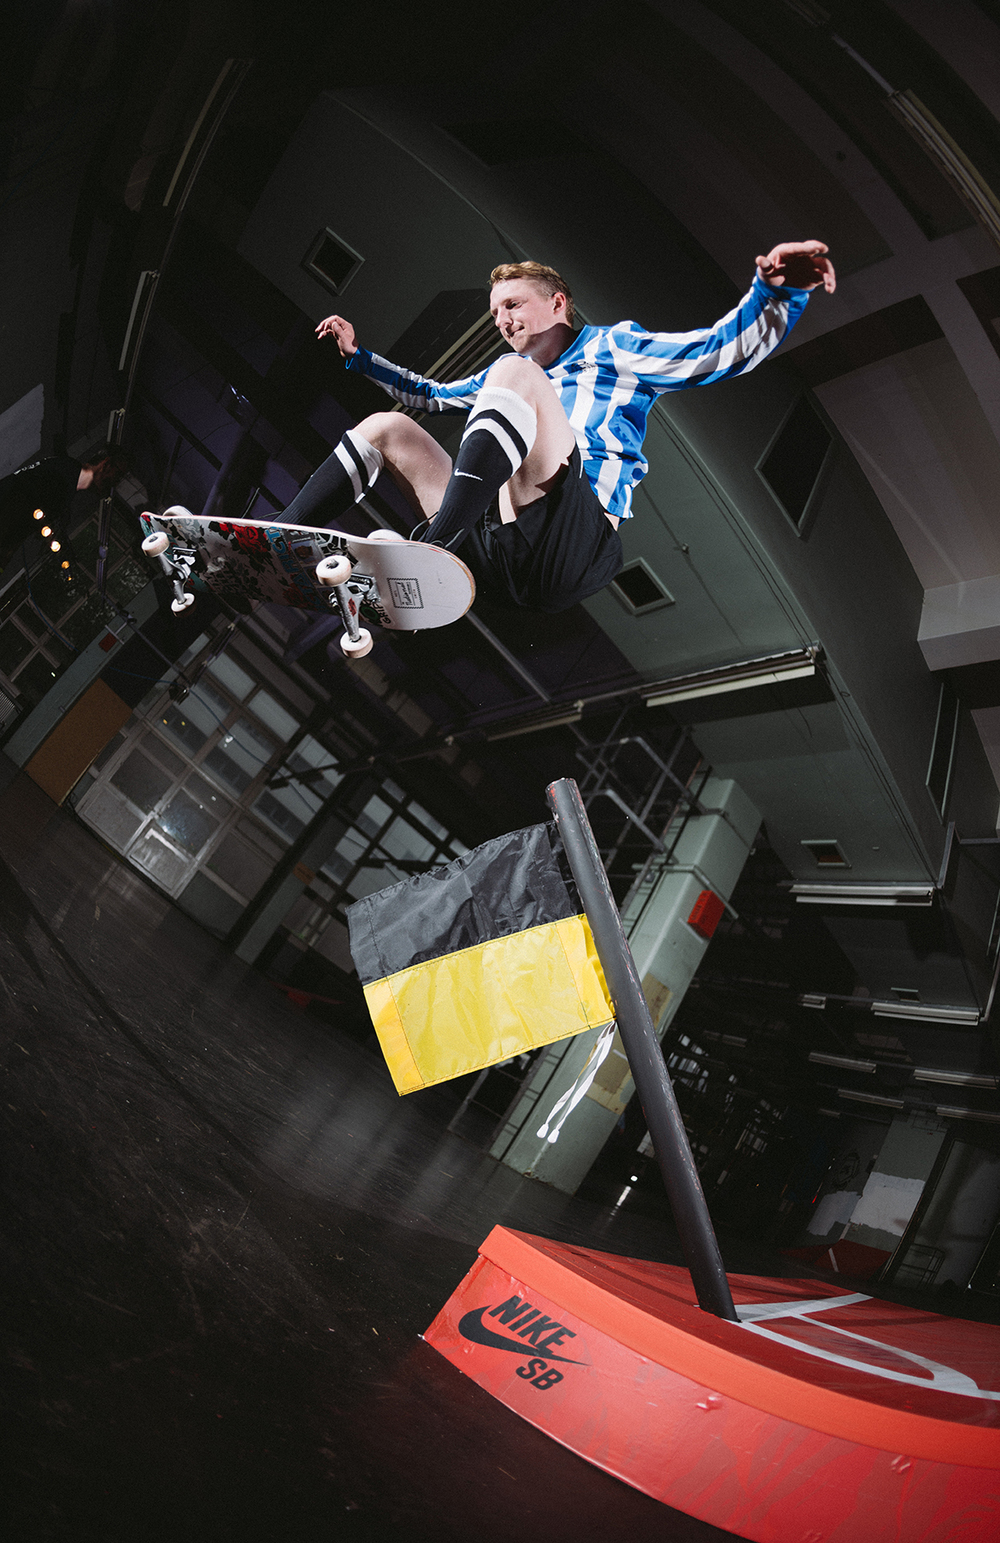 _IHC0312e-Neil-Smith-Polejam-Nike-SB-Risk-Everything-London-2014-Photographer-Maksim-Kalanep.jpg